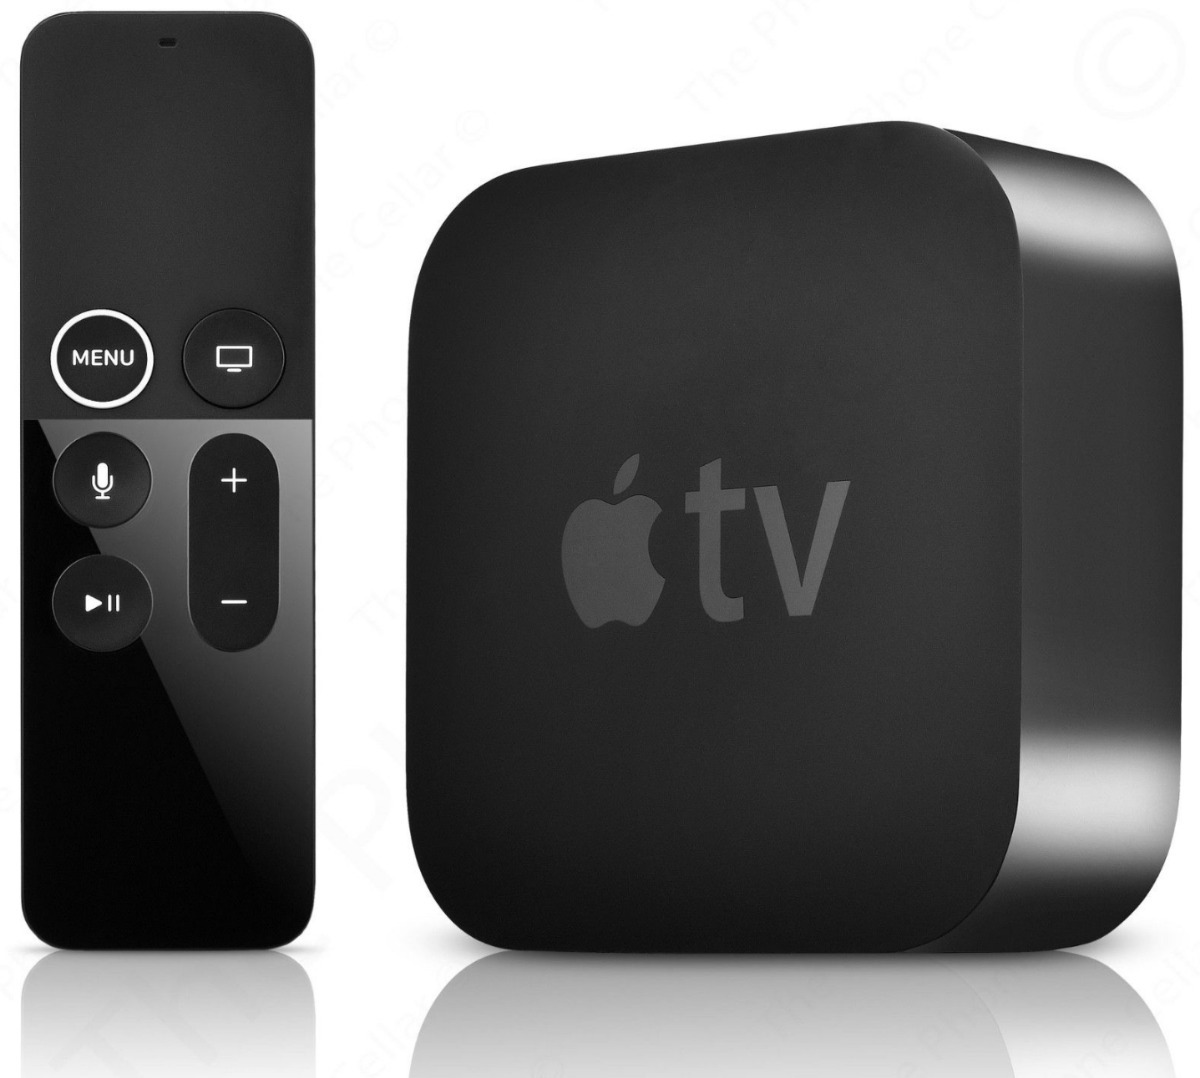 Apple Tv 4k Hdr 64gb 5 Generacion Dolby Atmos Netflix Espn